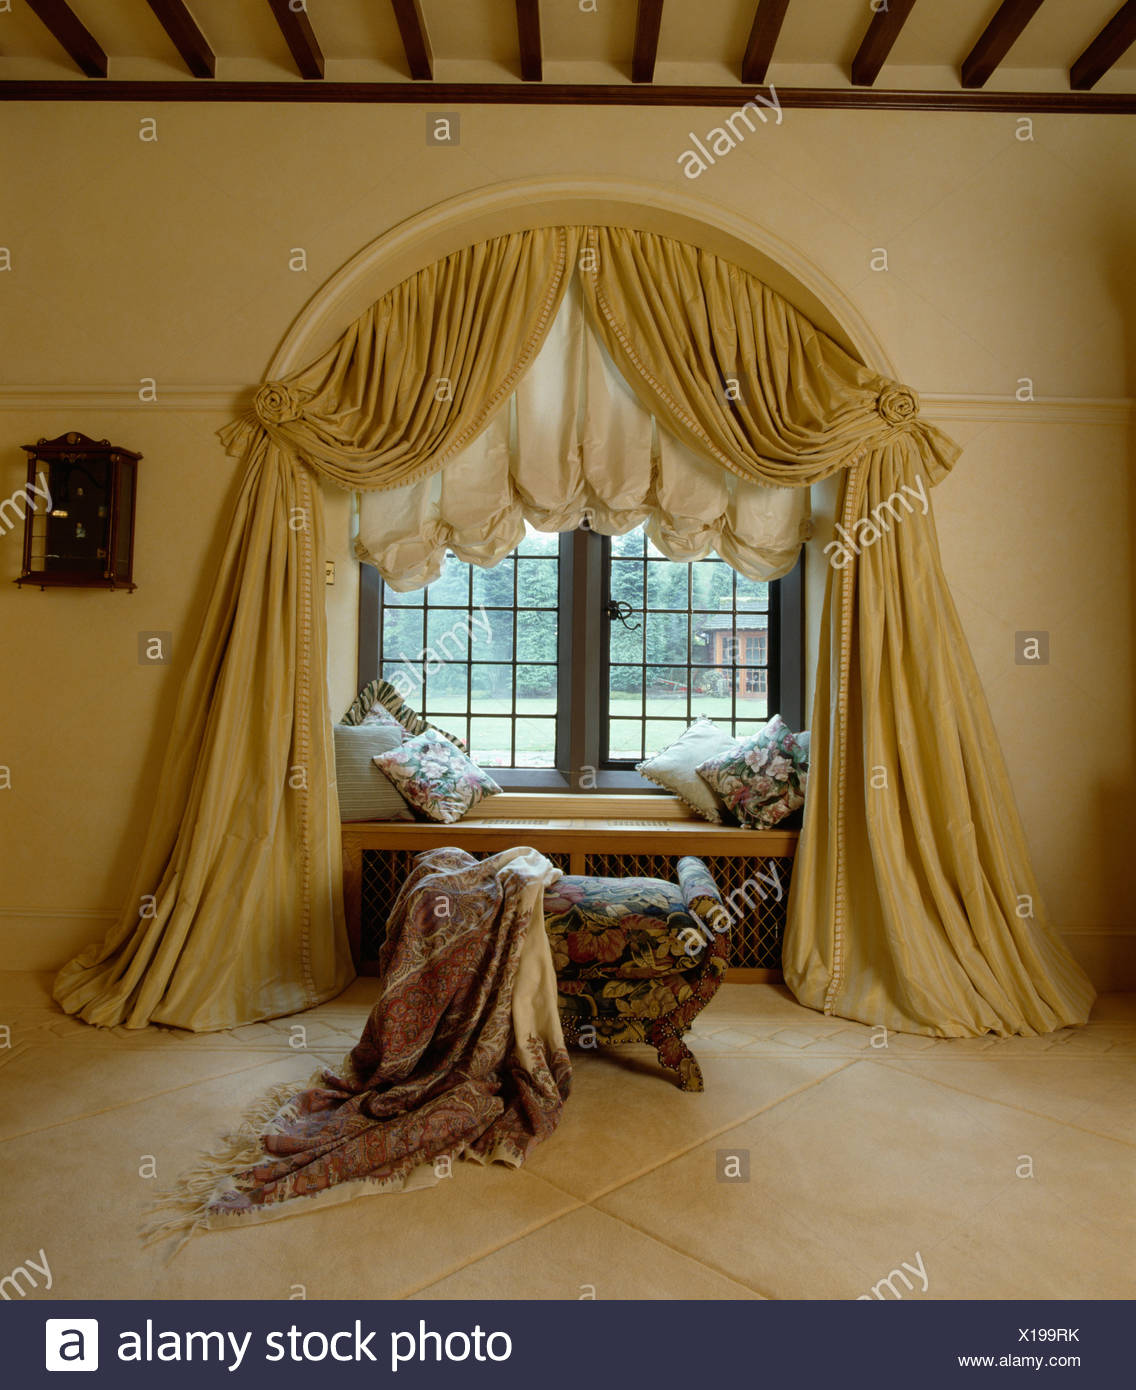 Cream Draped Curtains And Festoon Blind On Arched Window In Bedroom With Patterned Throw Onstool Front Of